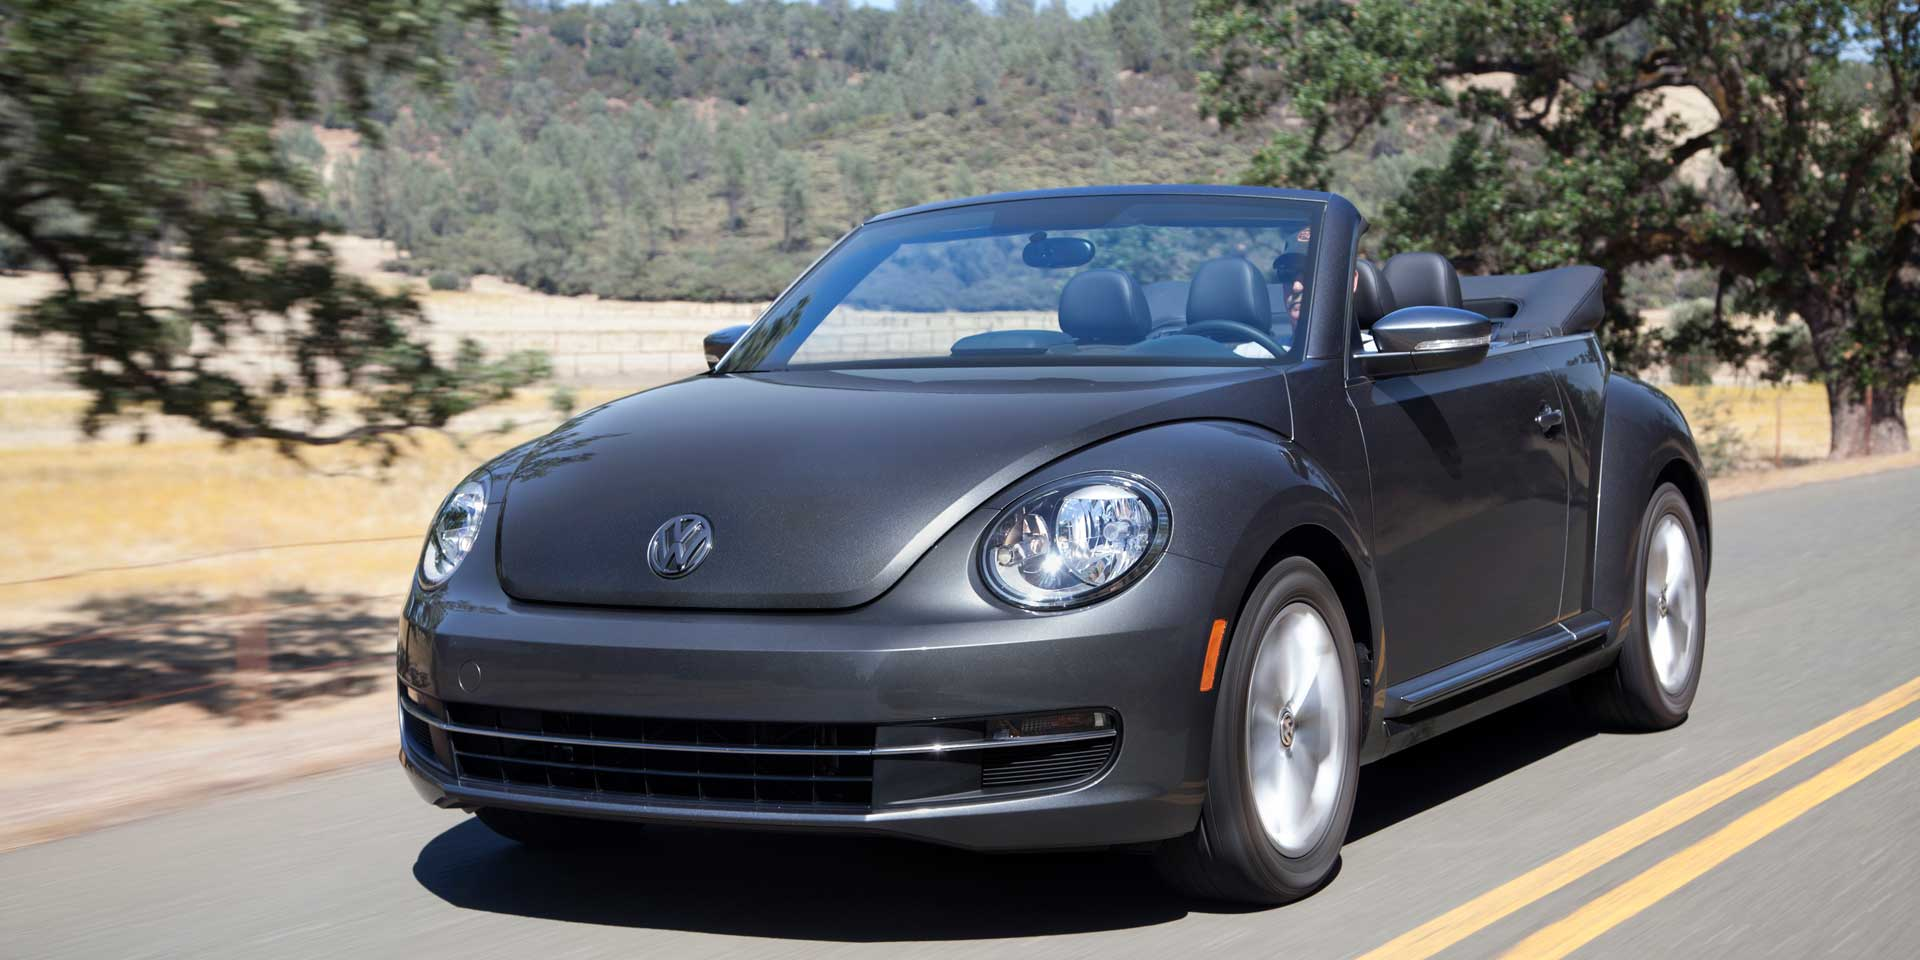 2017 Volkswagen Beetle The Is Modern Version Of Clic Bug Available In Coupe Or Convertible Forms Gains